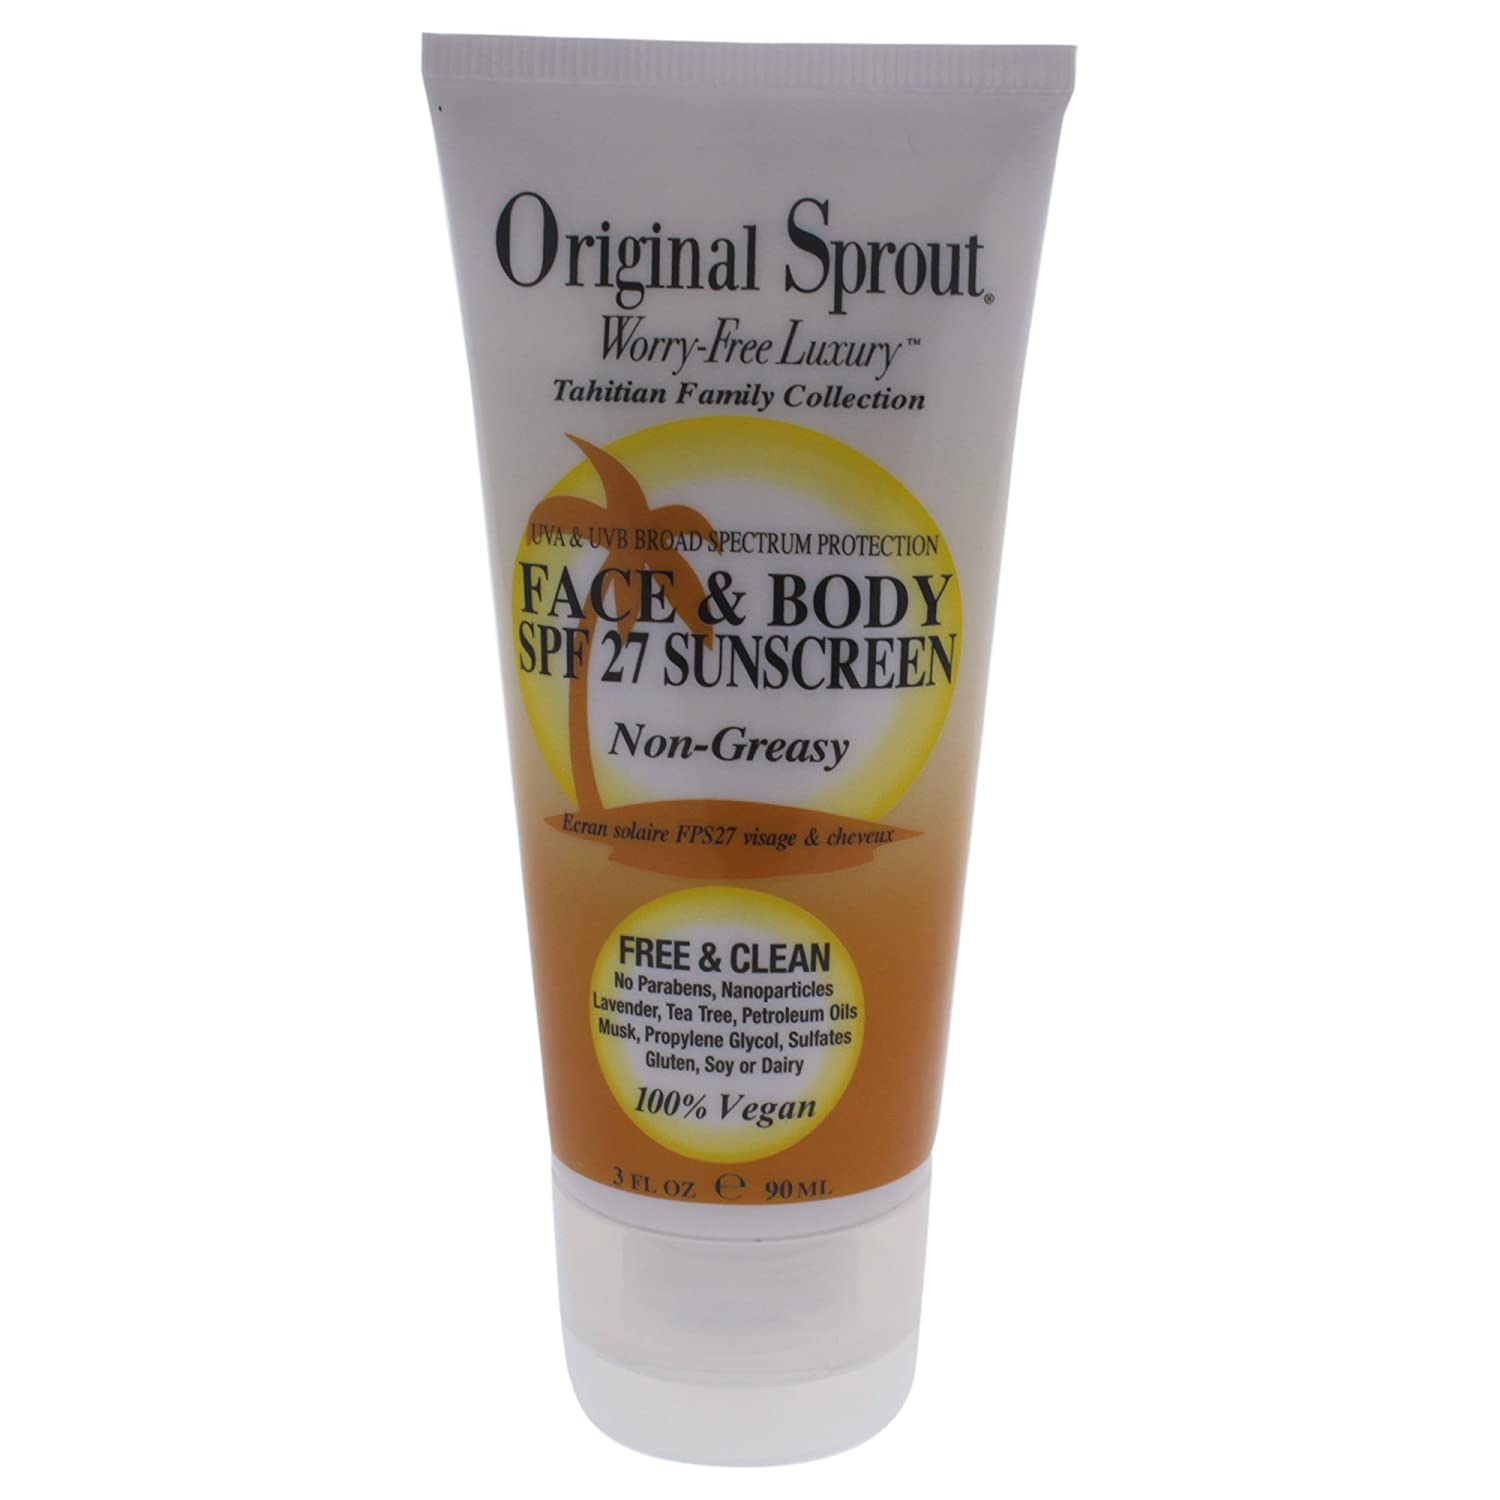 Original Sprout face & body sunscreen 3 oz 0012